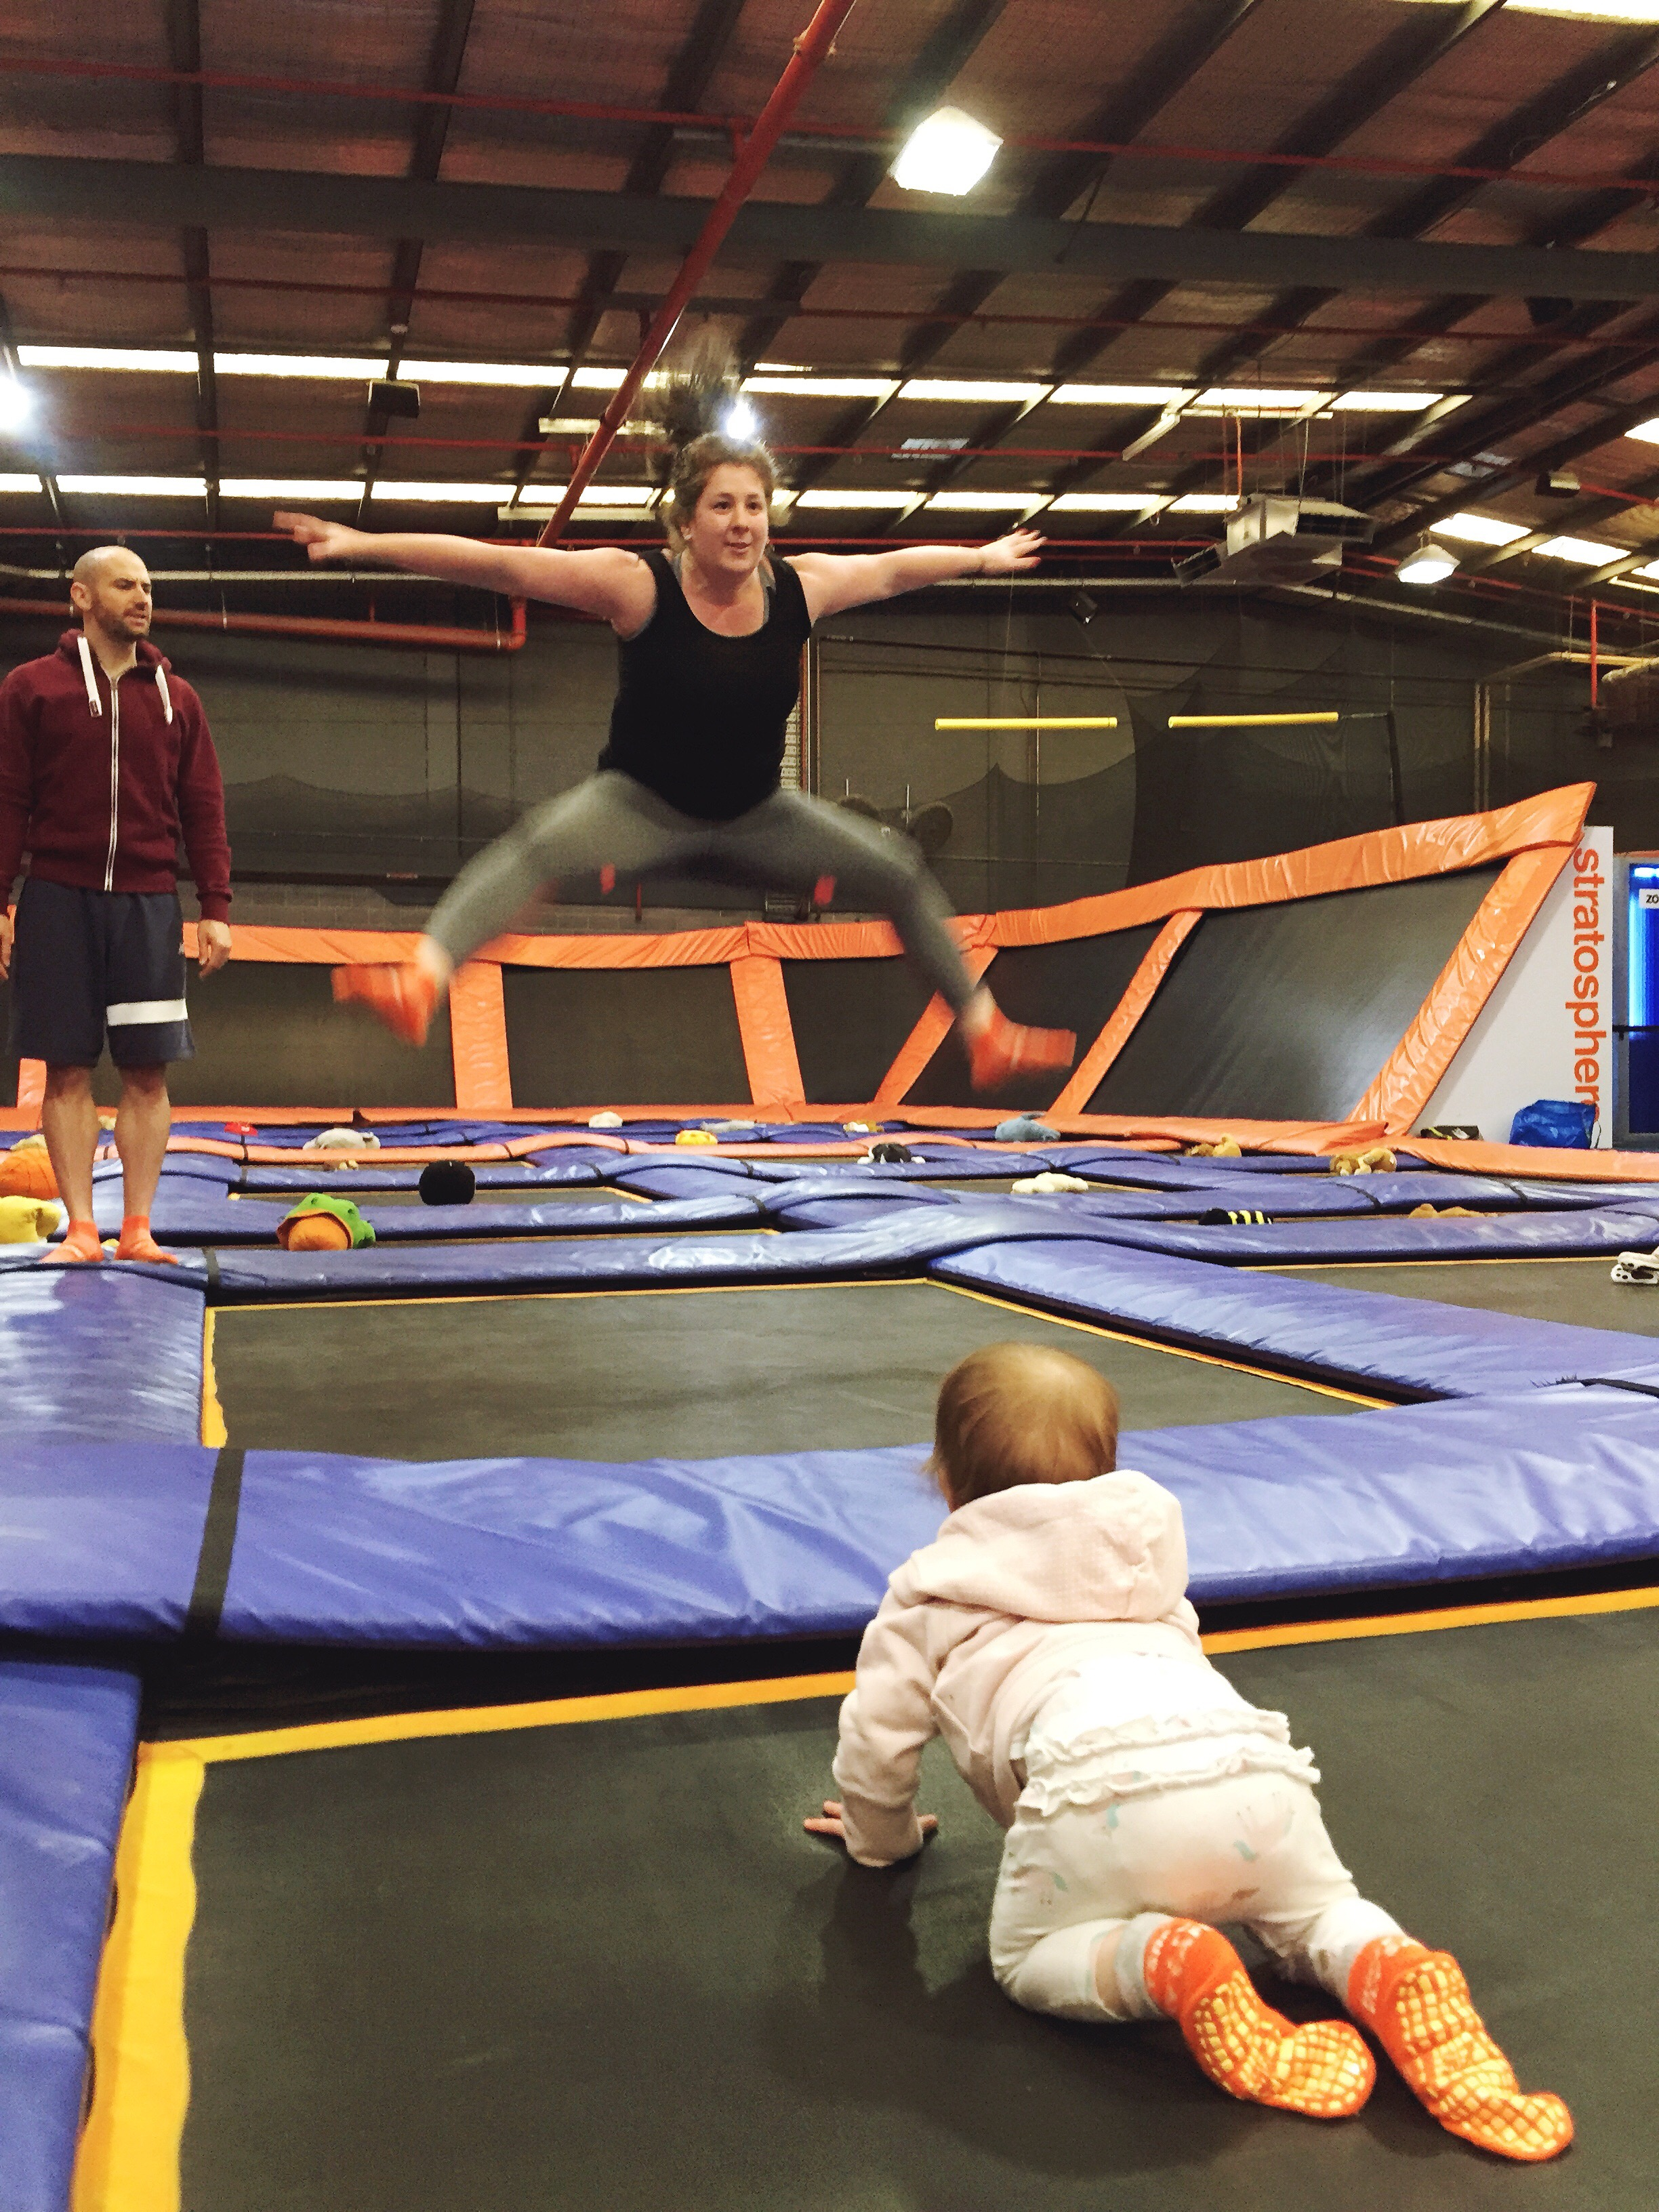 Mum and baby on trampoline